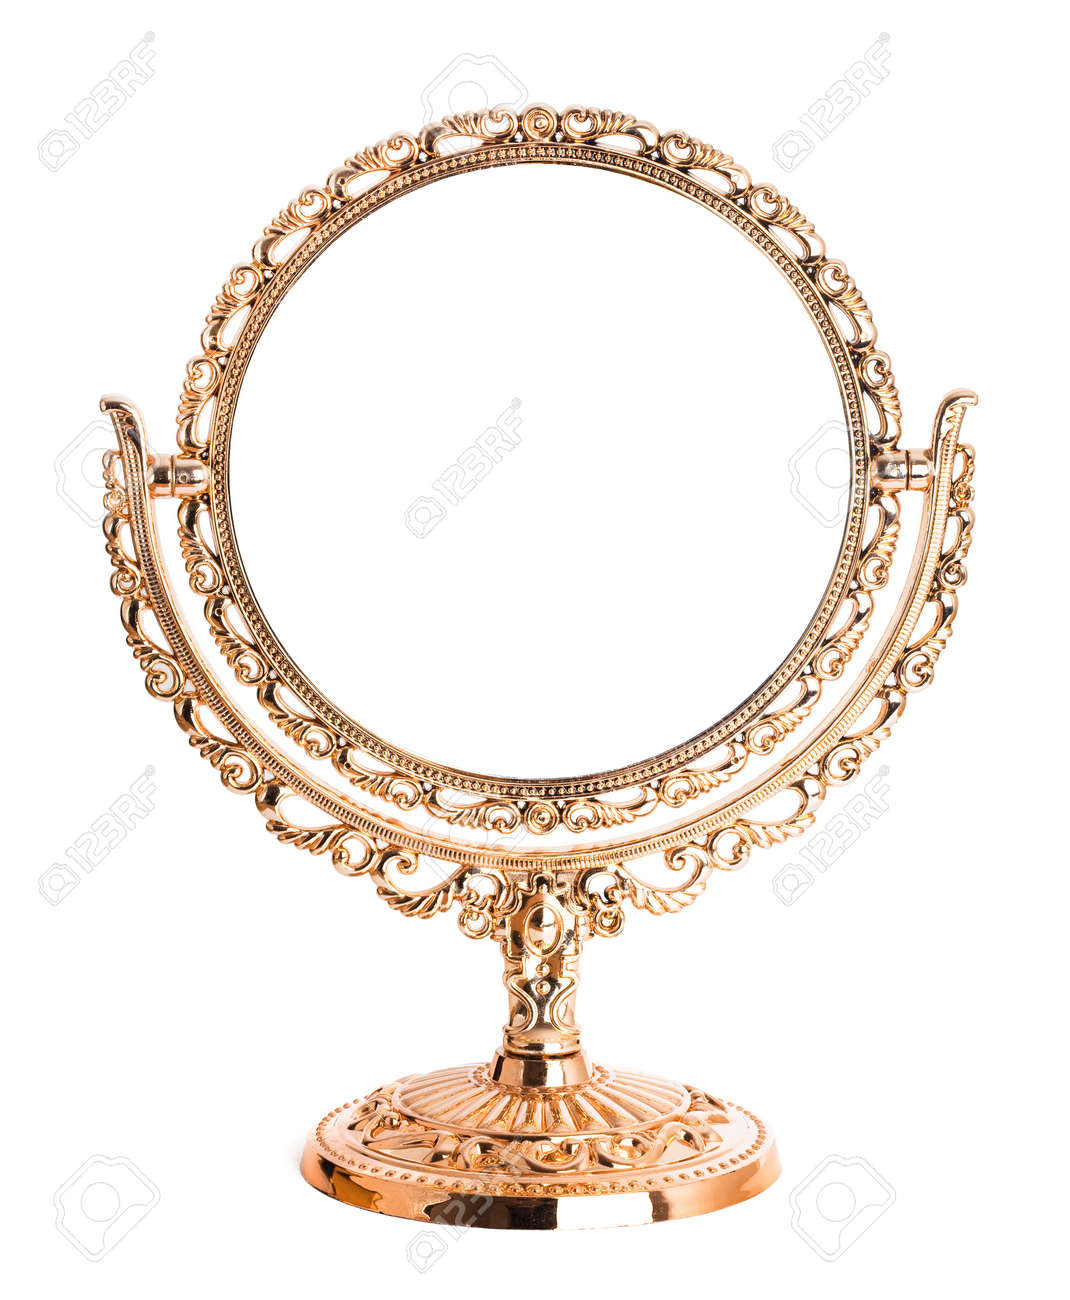 Antique golden mirror isolated on white background Stock Photo - 6514999